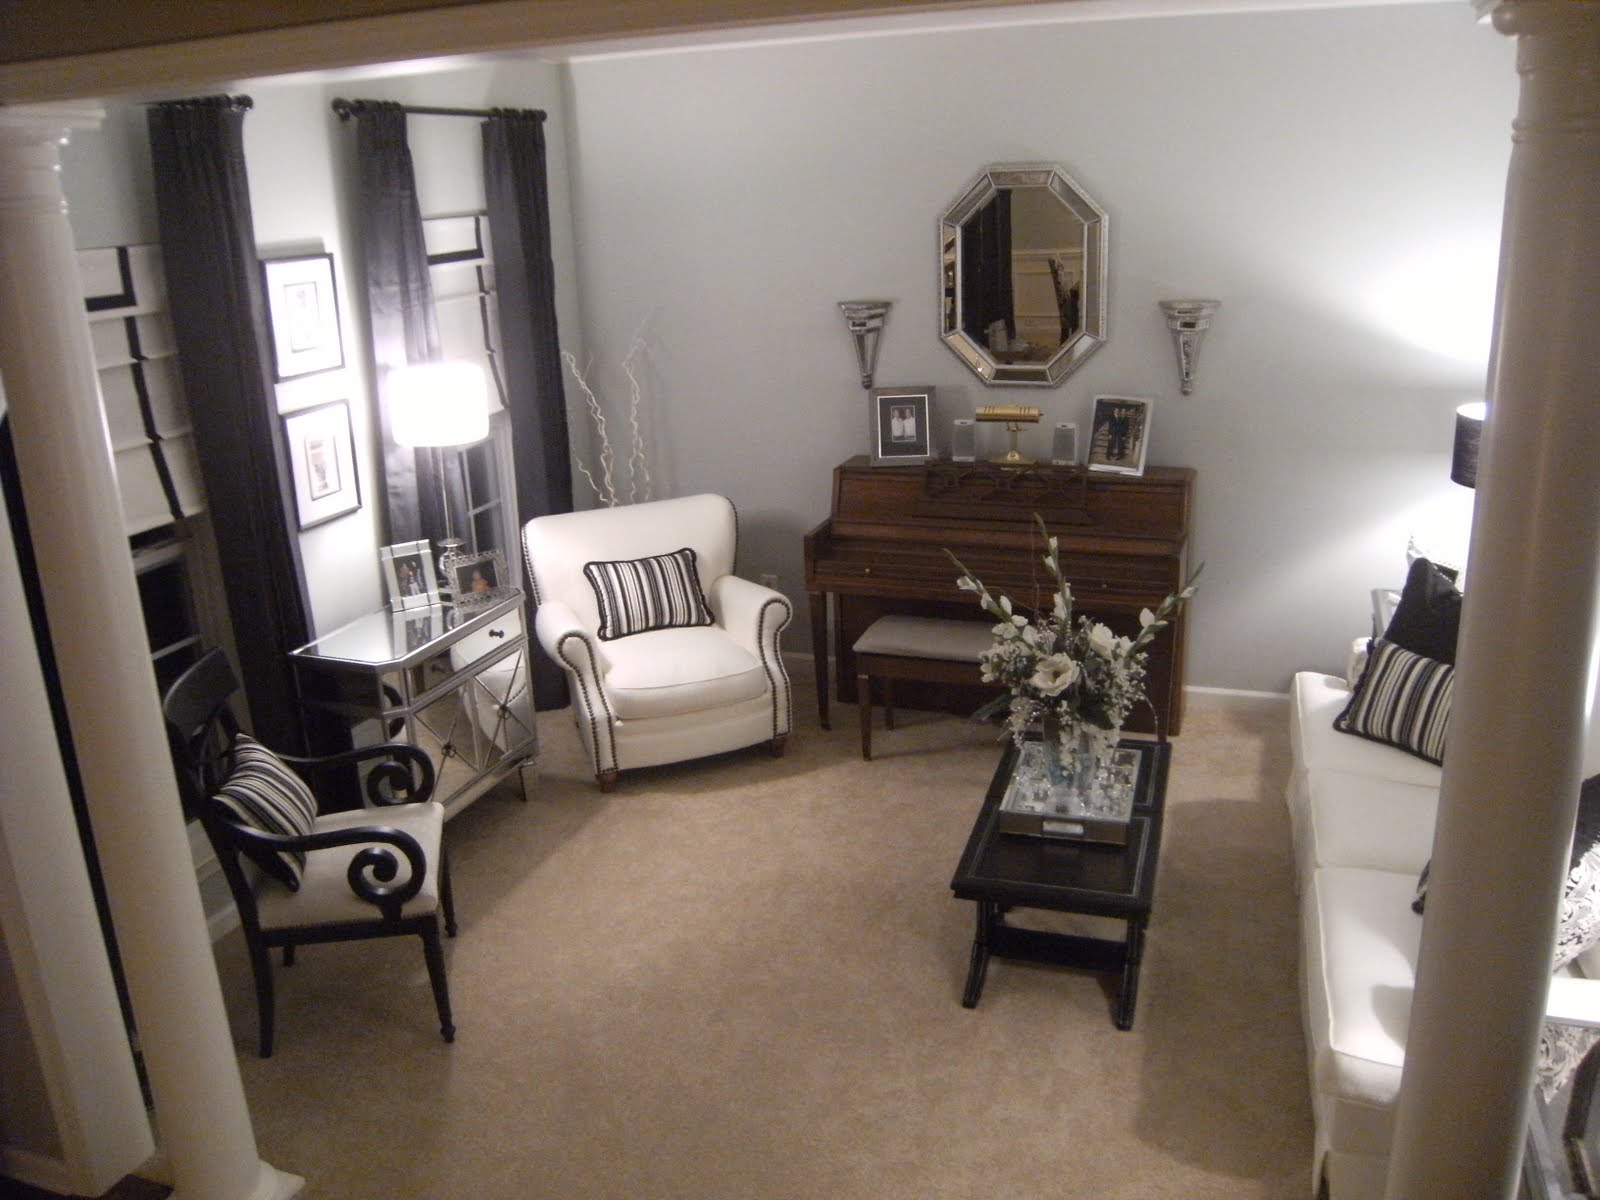 Southgate Residential: Formal Living Room Unveiled